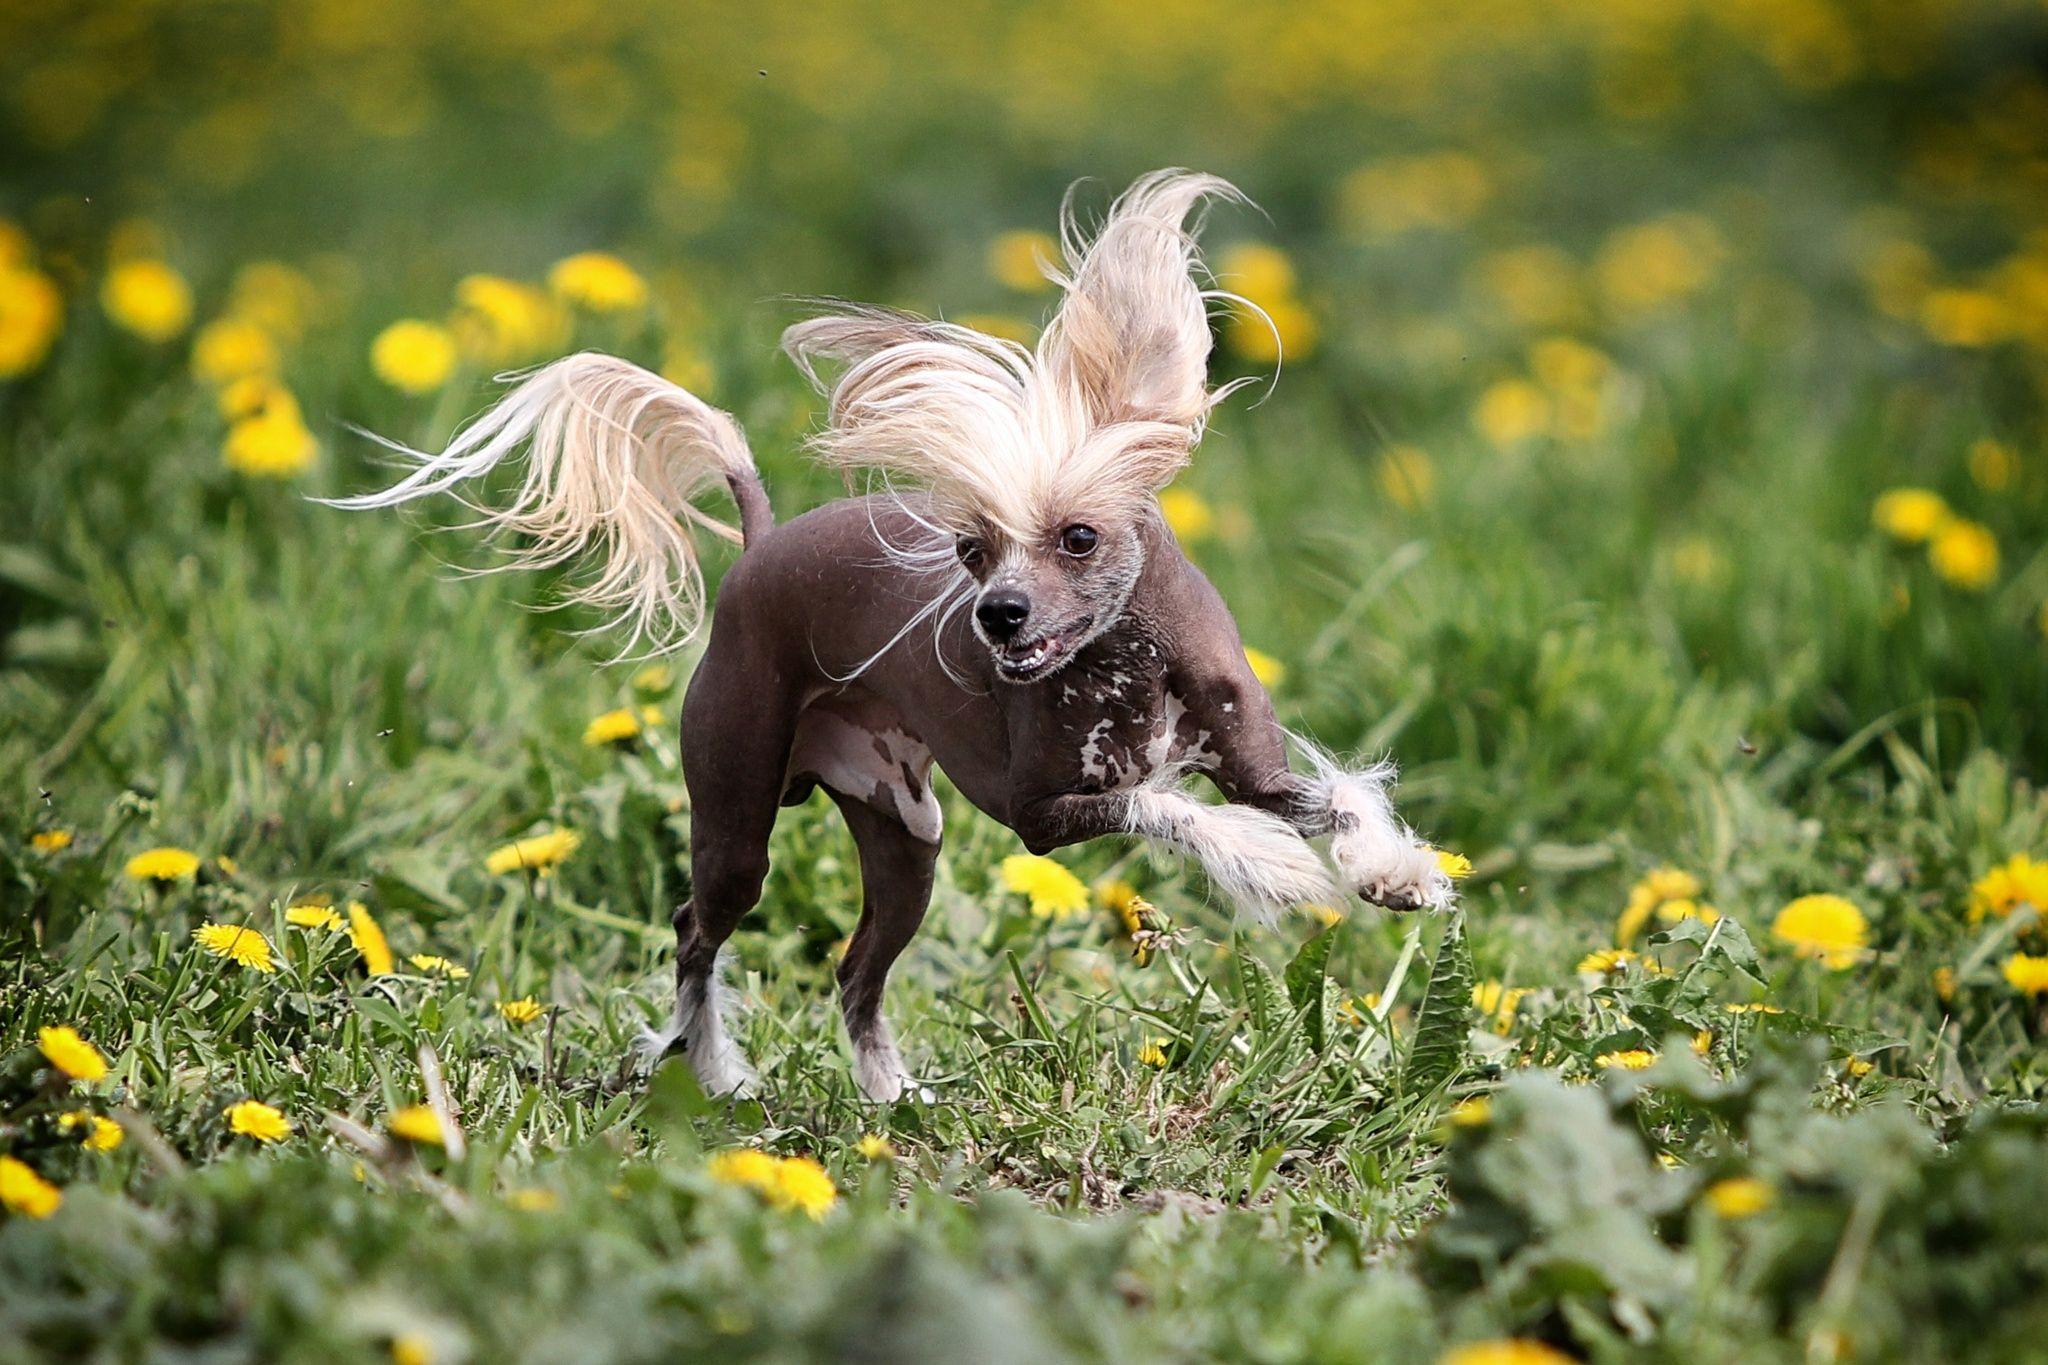 Photograph Chinese crested dog by Nika Petrova on 500px